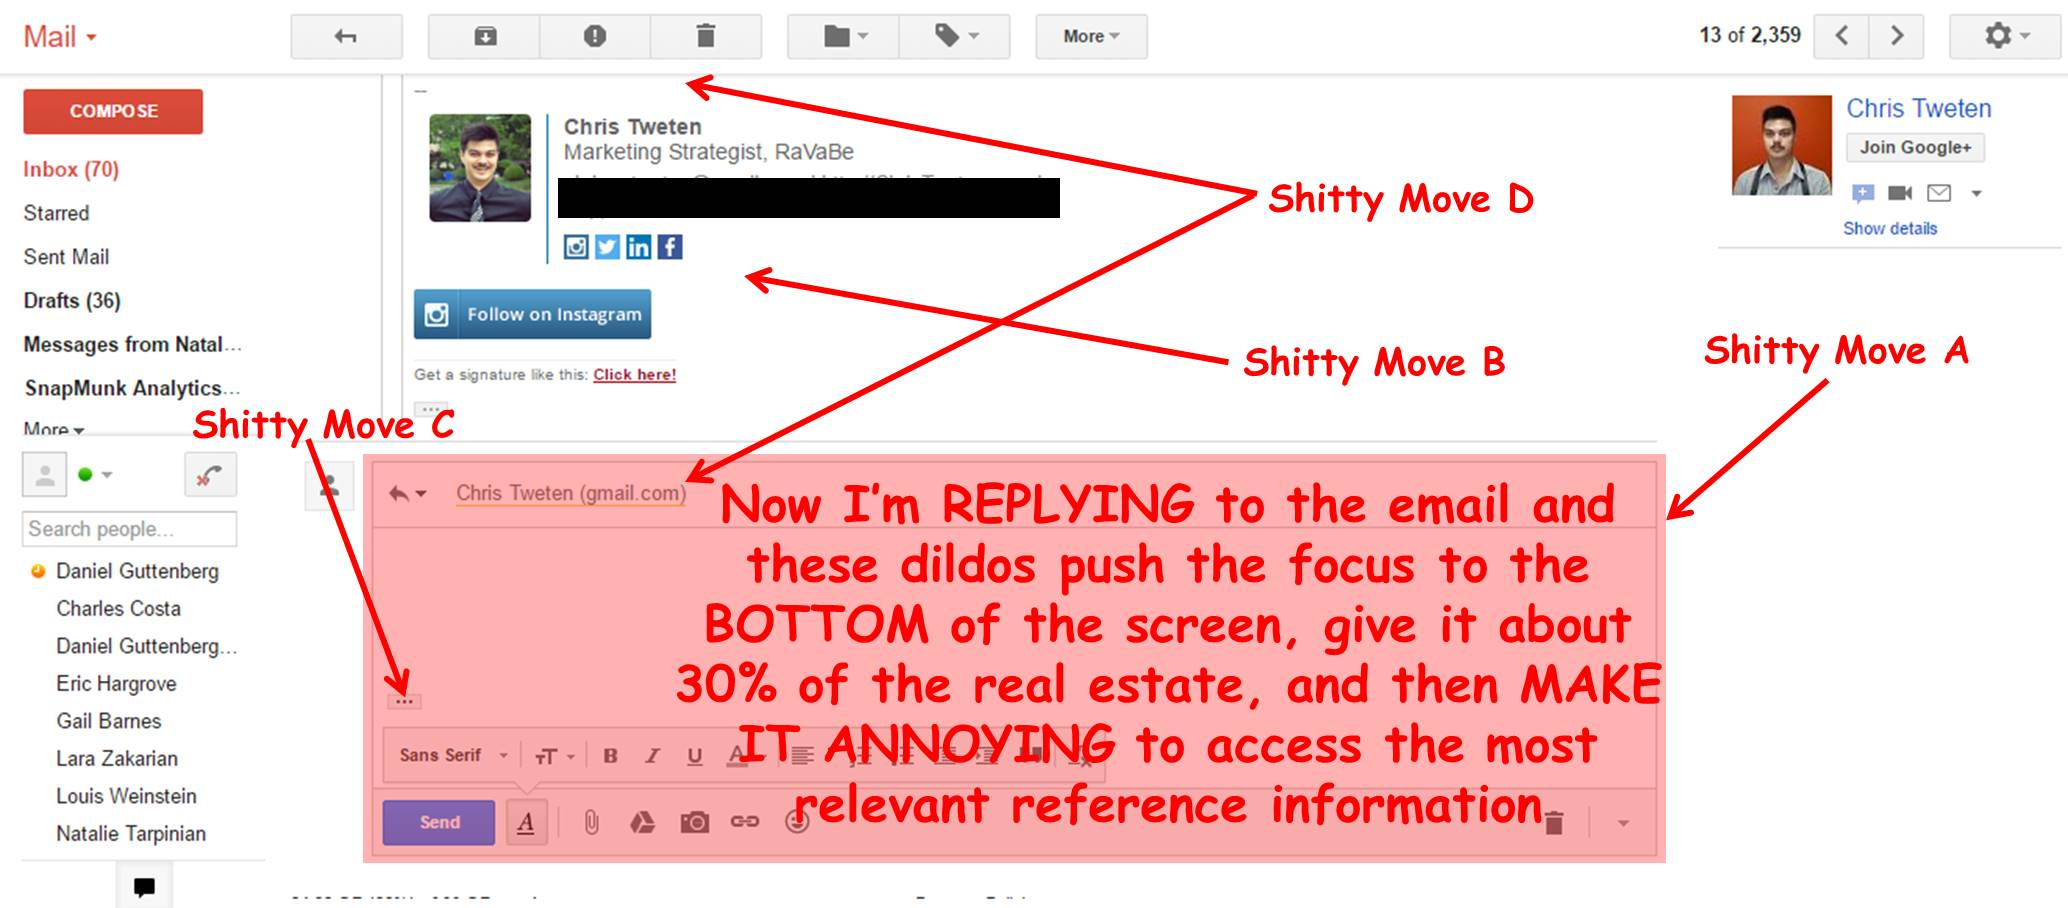 Gmail UX for replying to an email